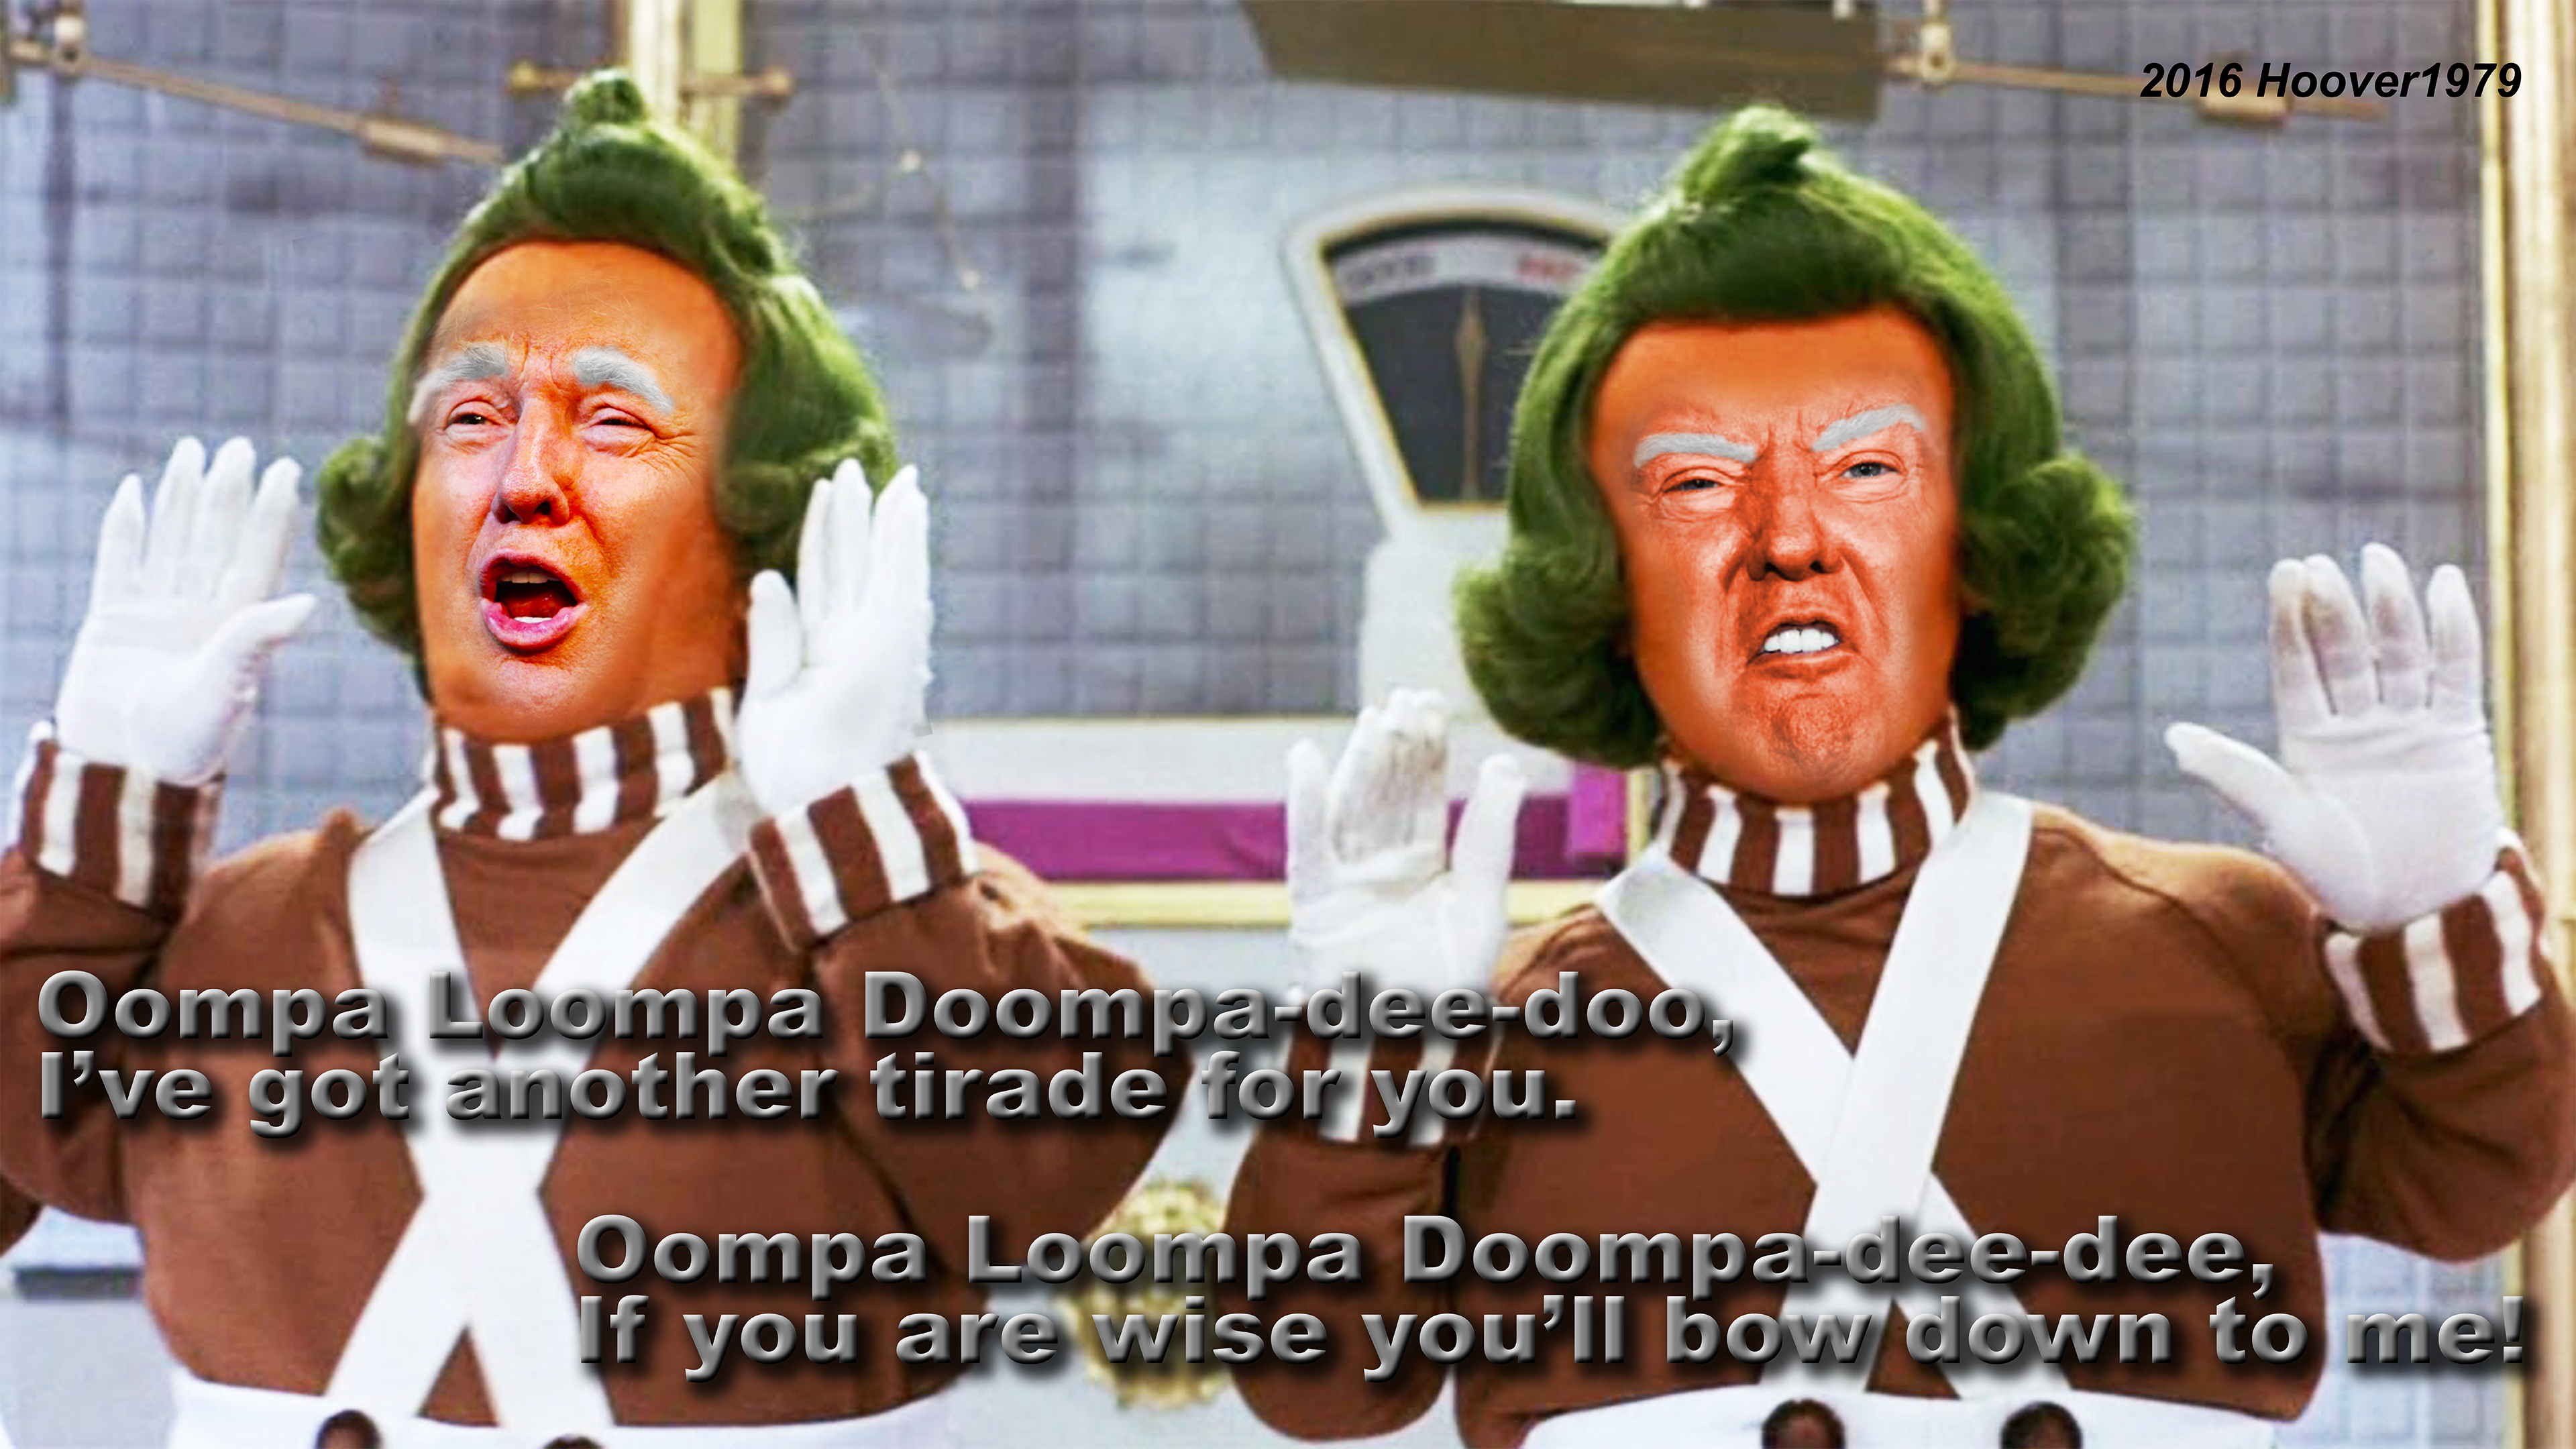 Trump Political Satire Meme Oompa Loompa S By Hoover1979 On